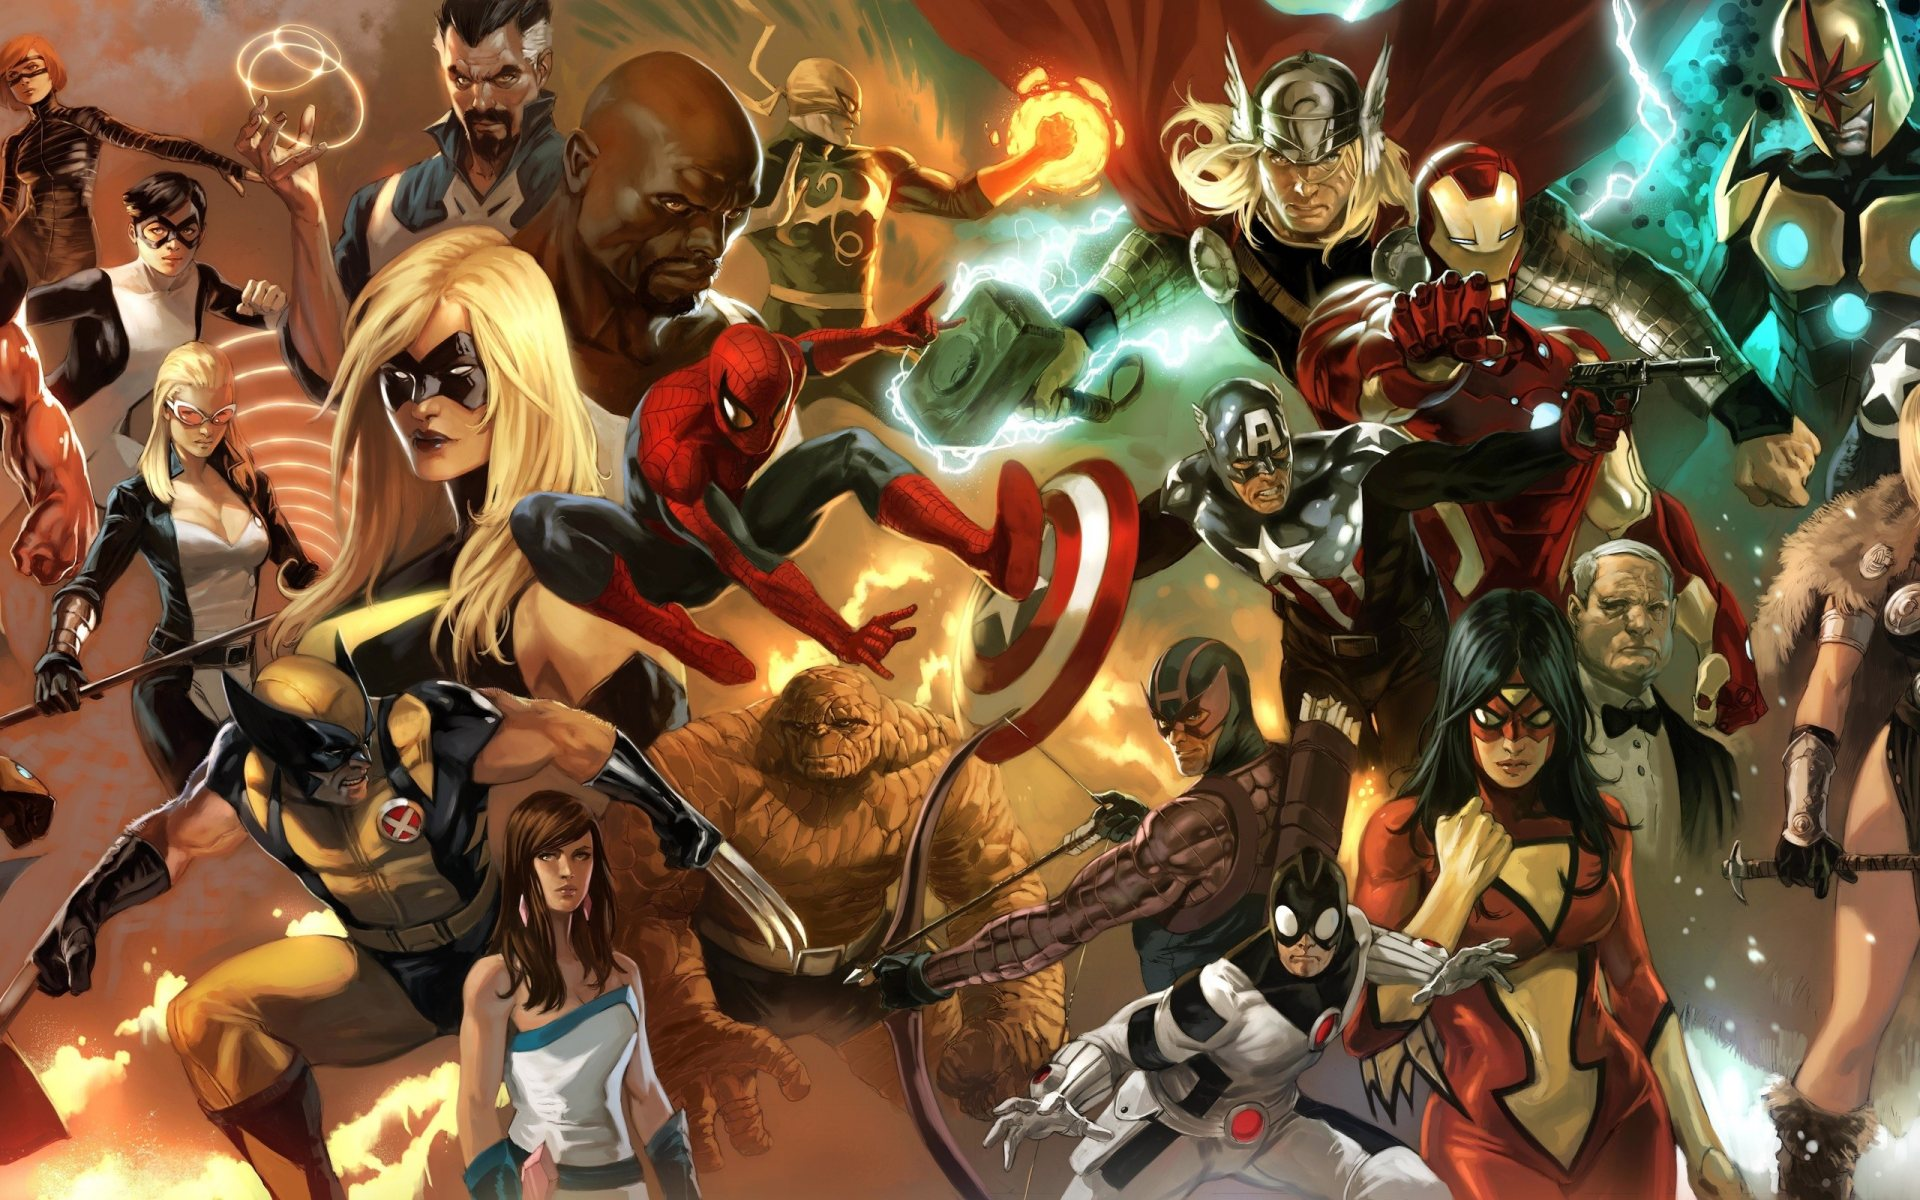 Group of super heroes hd wallpapers 1920x1200 3d super heroes wallpapers 68 images voltagebd Choice Image